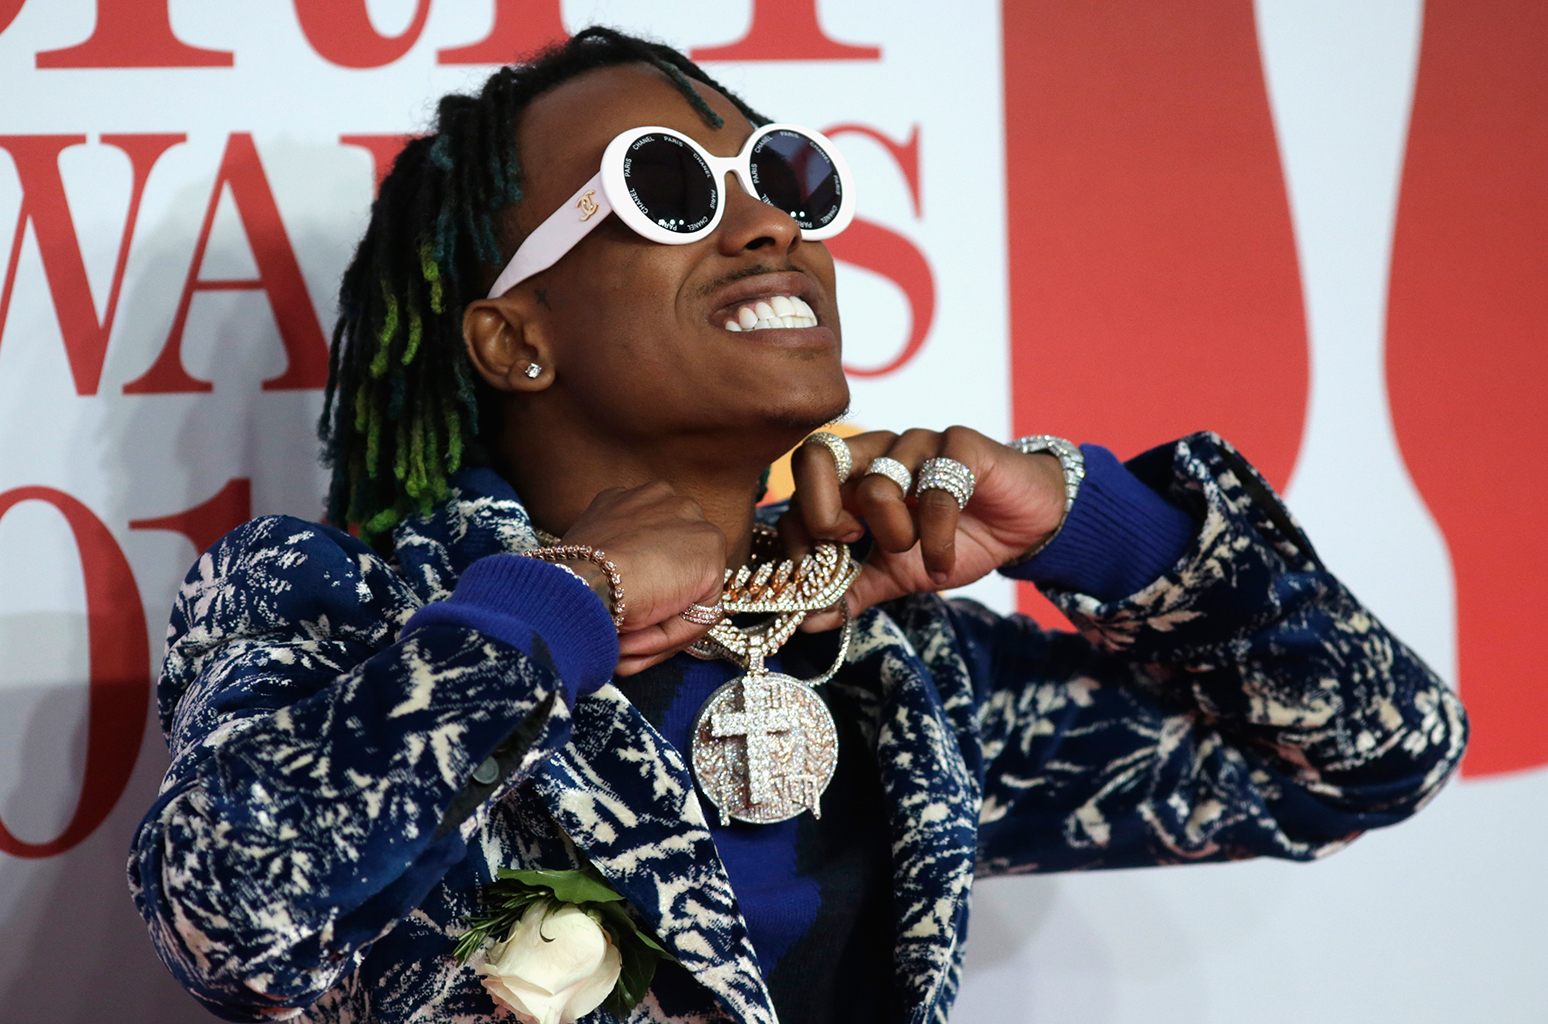 Explore American Rapper Rich the Kid's Dating Affairs, Girlfriend, Divorce Issues, Controversies, Children, Net Worth, Career, and Wiki-Bio!